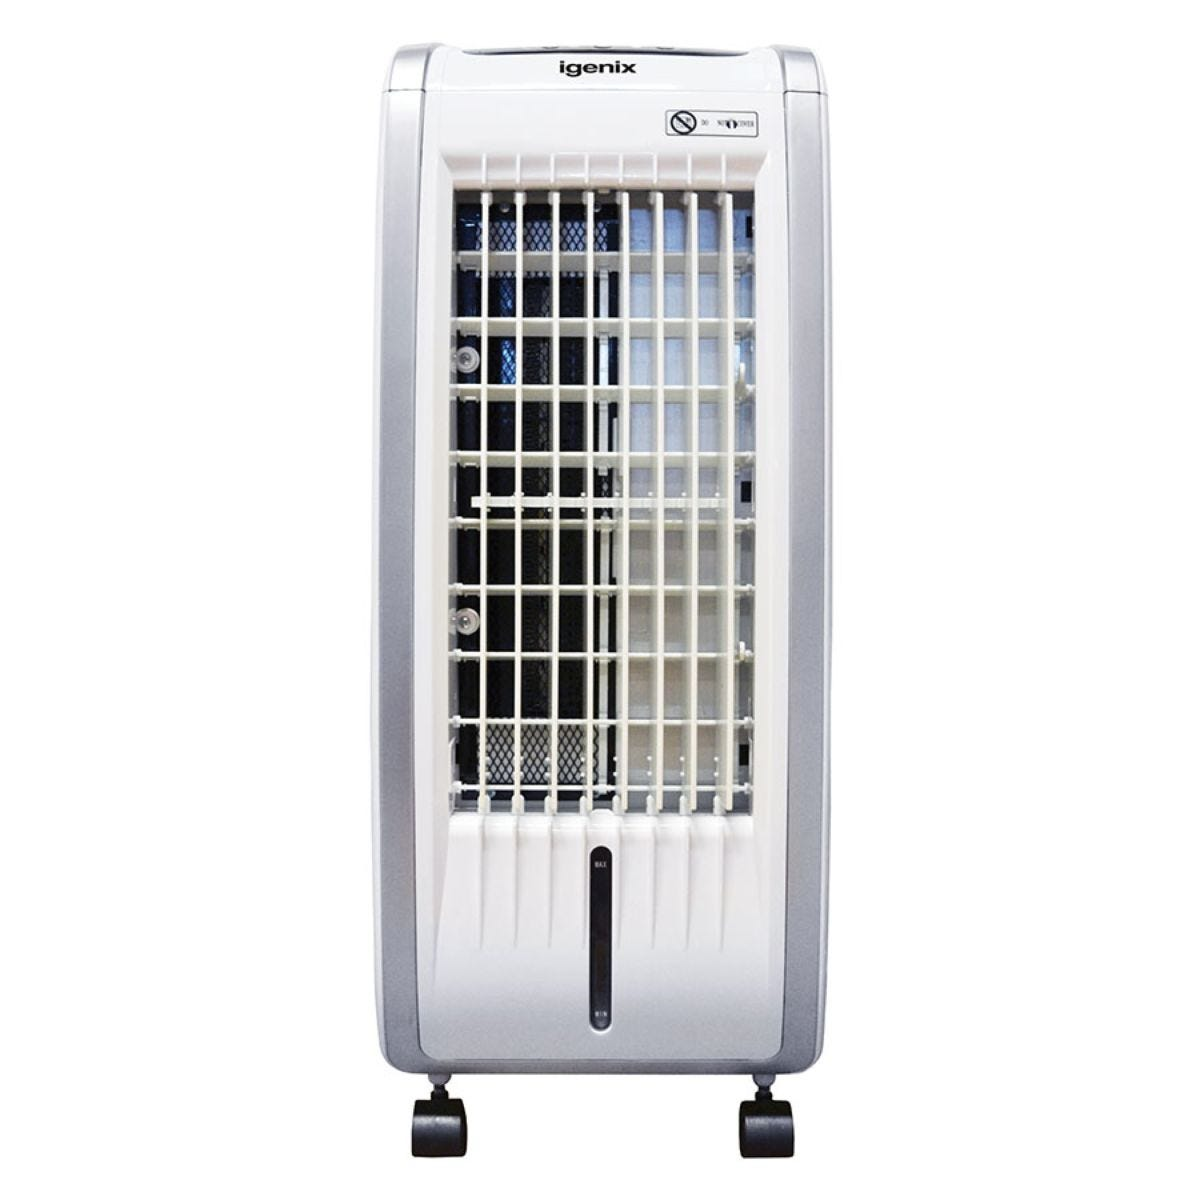 Igenix IG9704 4-in-1 Cooler, Heater, Ioniser and Humidifier 5L Evaporative Air Cooler - White